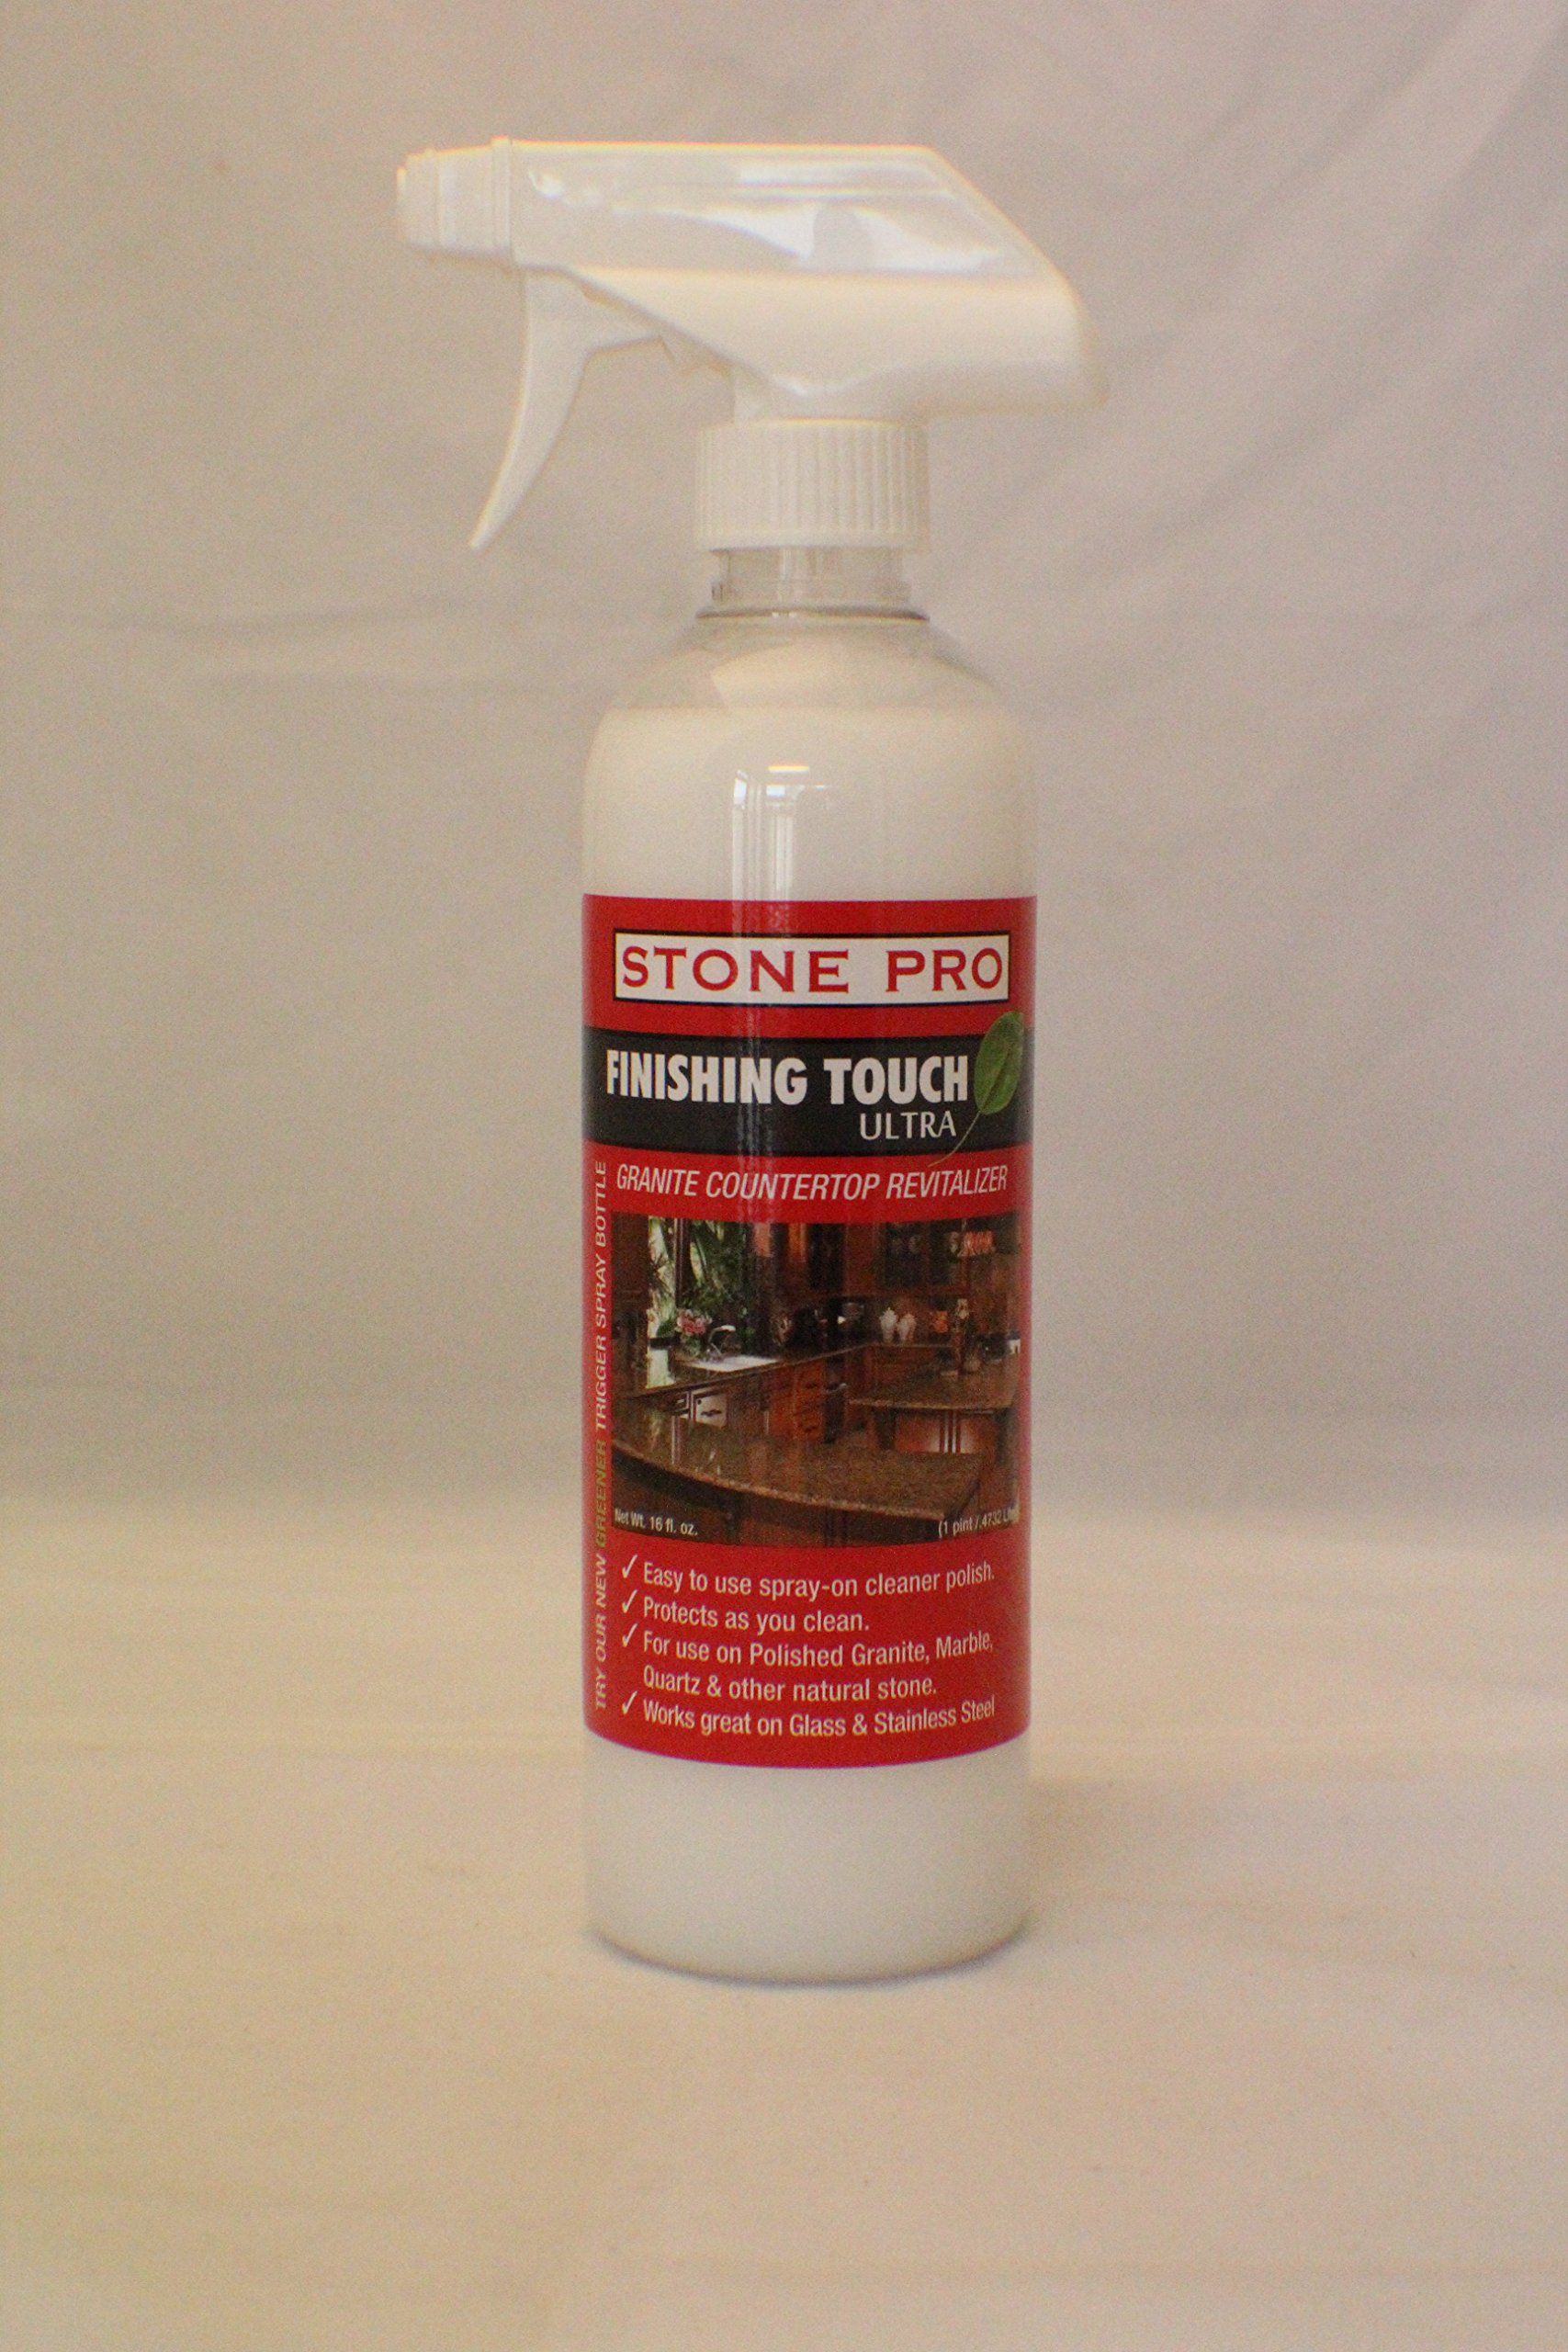 Stone Pro Finishing Touch Ultra - Granite Countertop Revitalizer - 16 oz. Spray